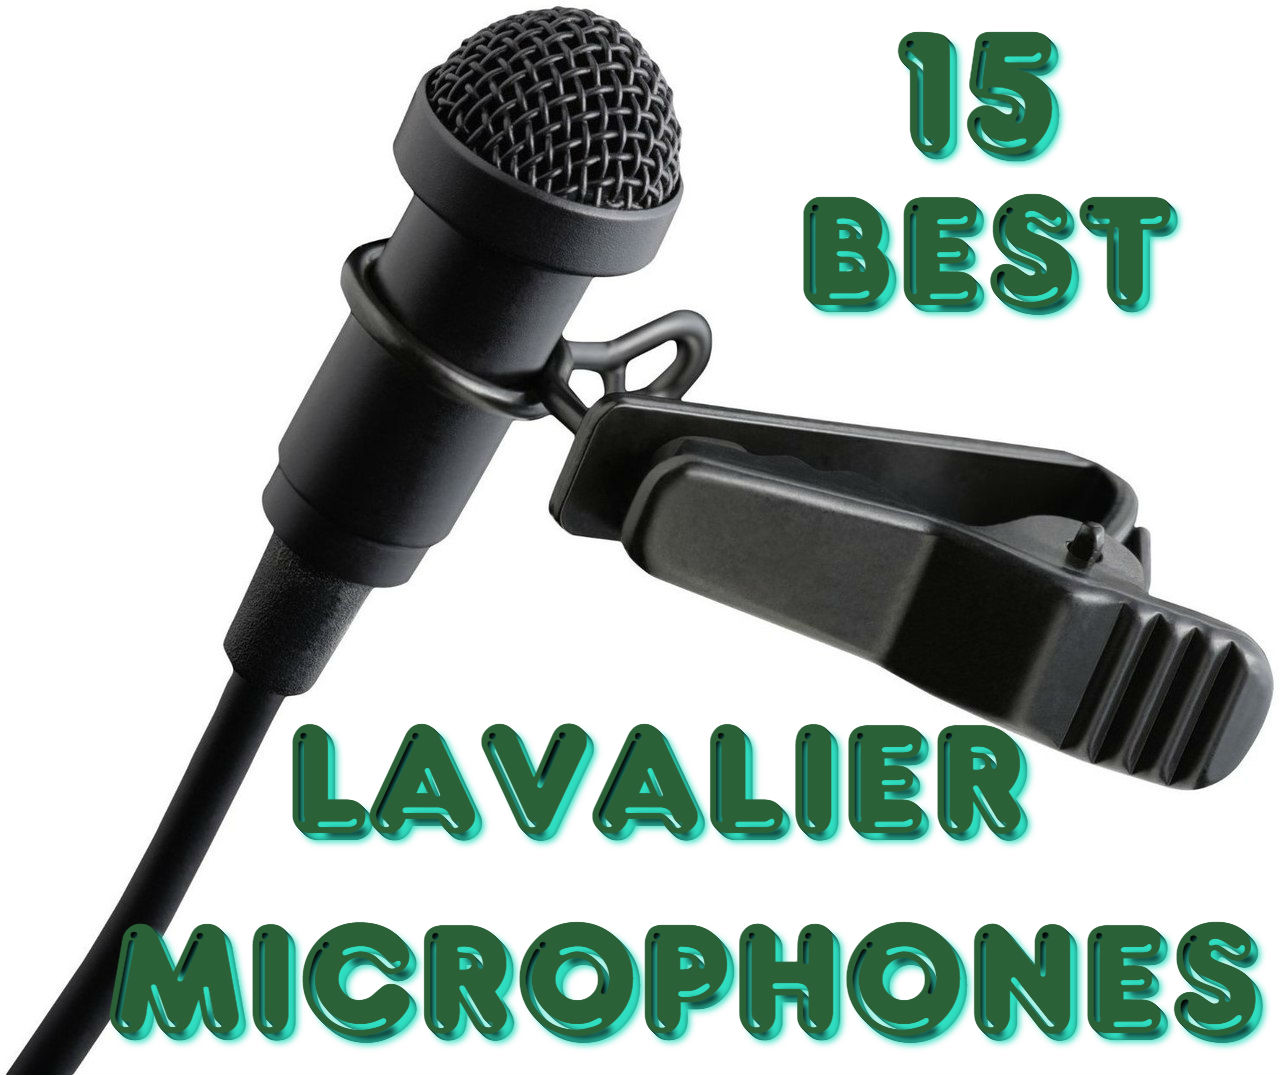 hight resolution of classification of microphones is complex they are distinguished by the type of conversion to dynamic and condenser condenser microphones can be widely or